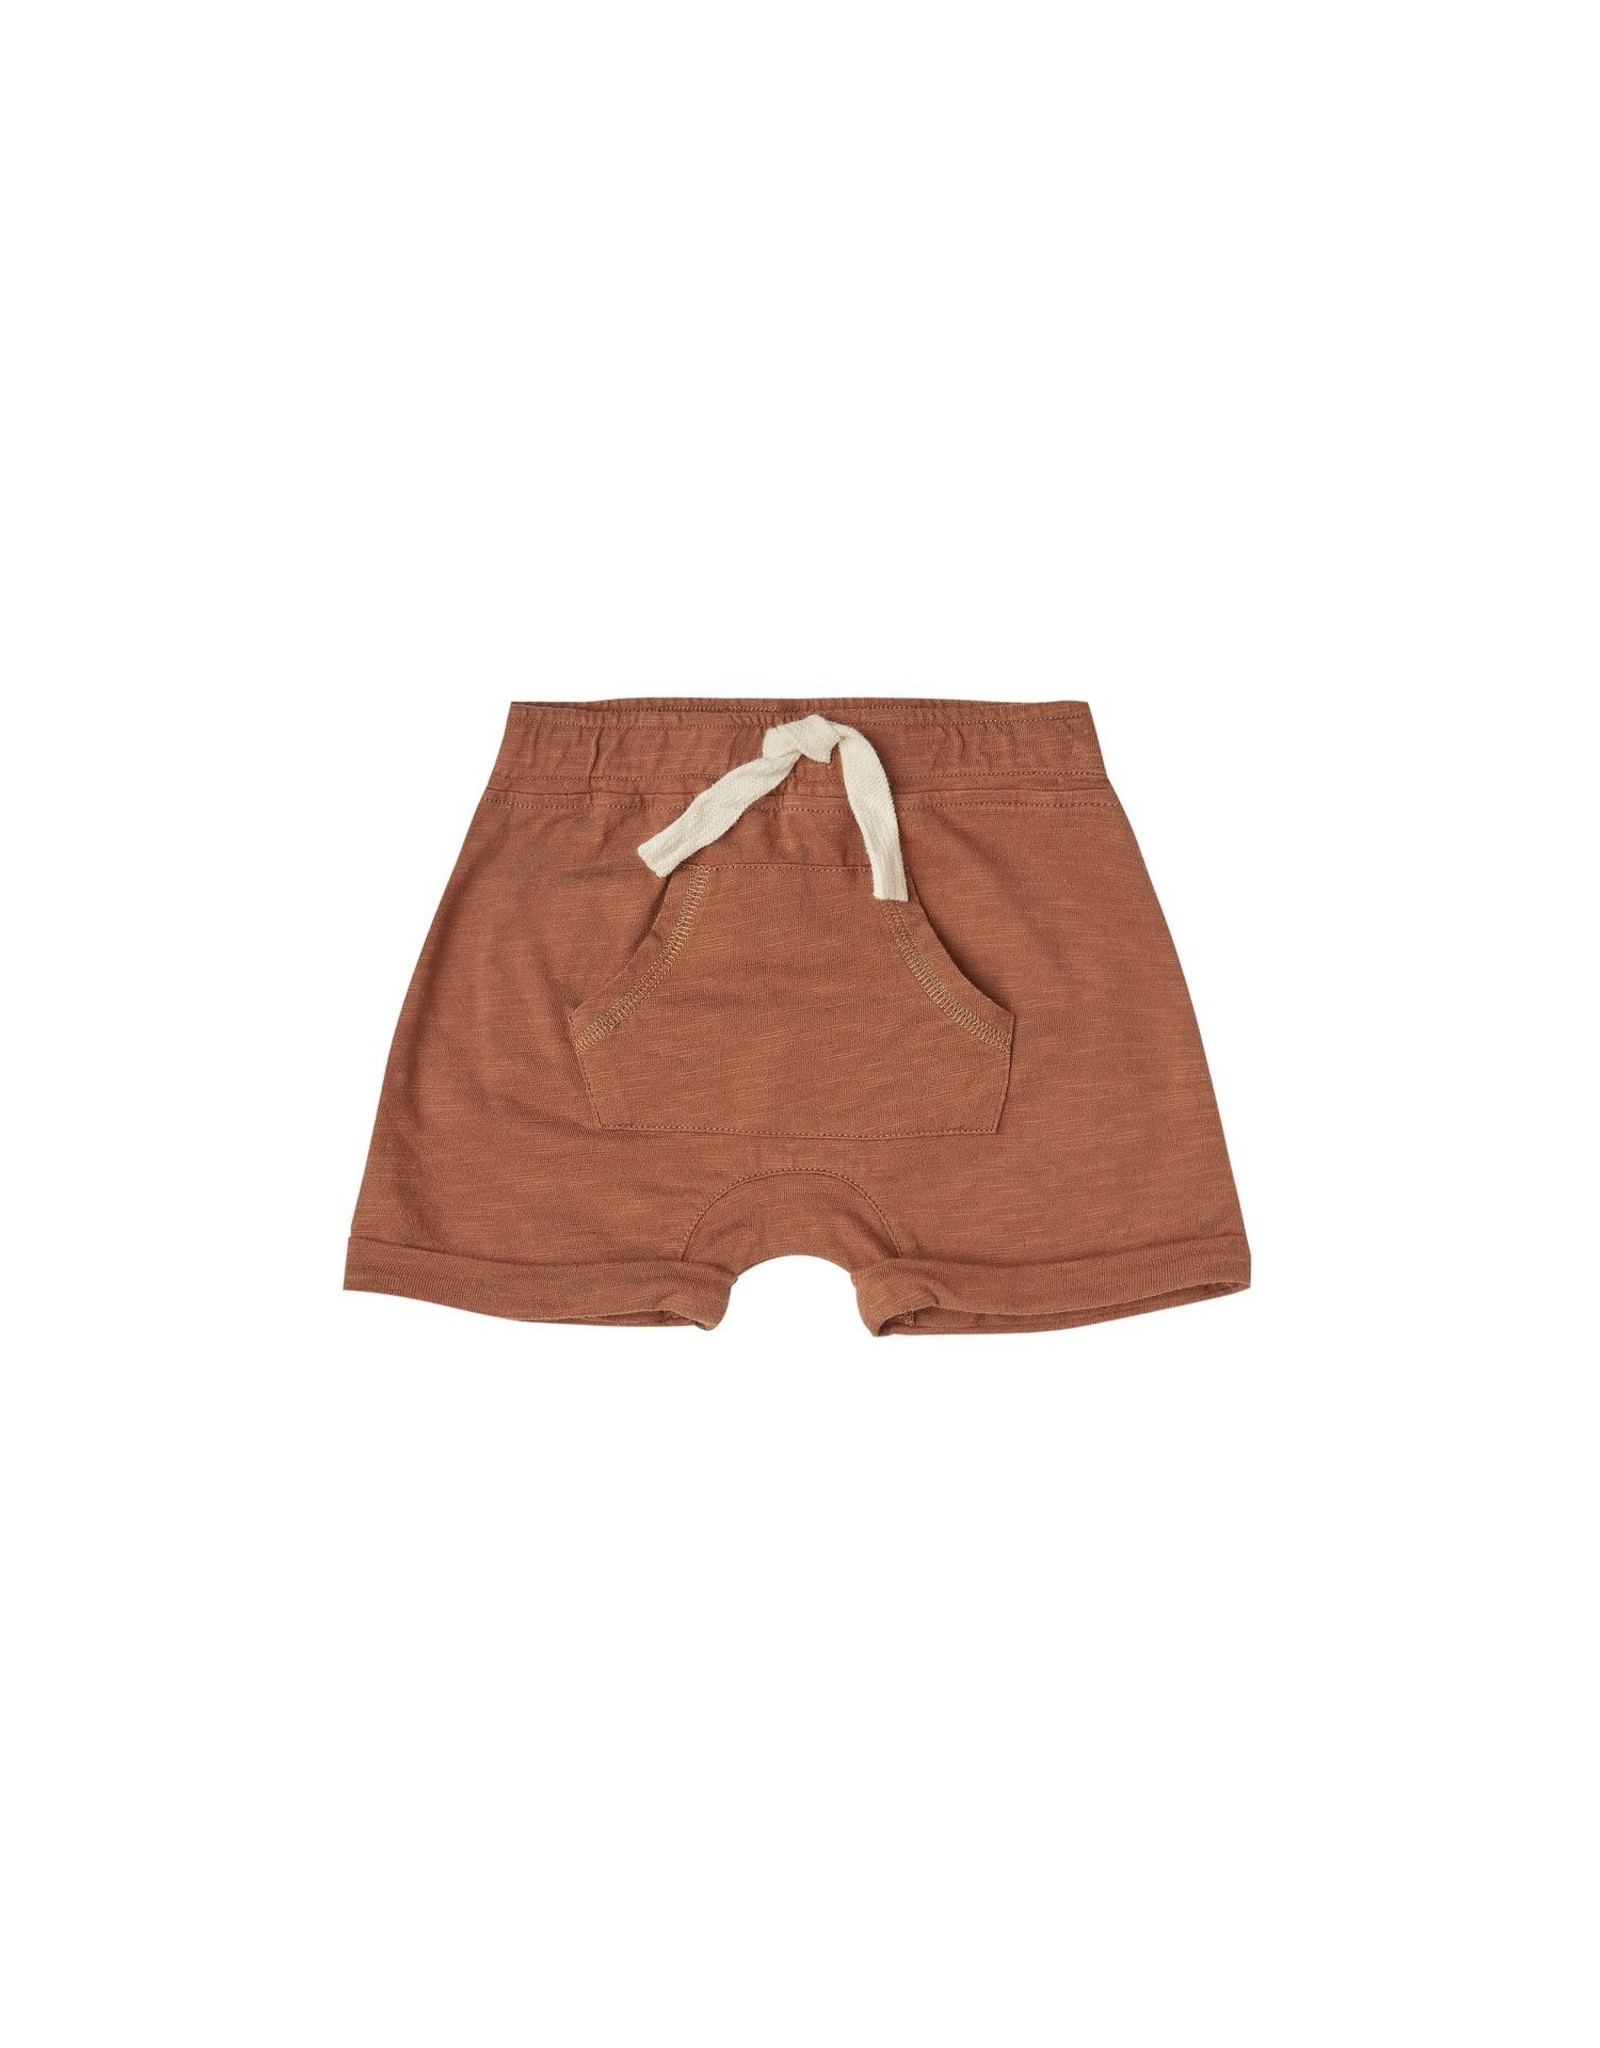 Rylee and Cru pouch short- amber